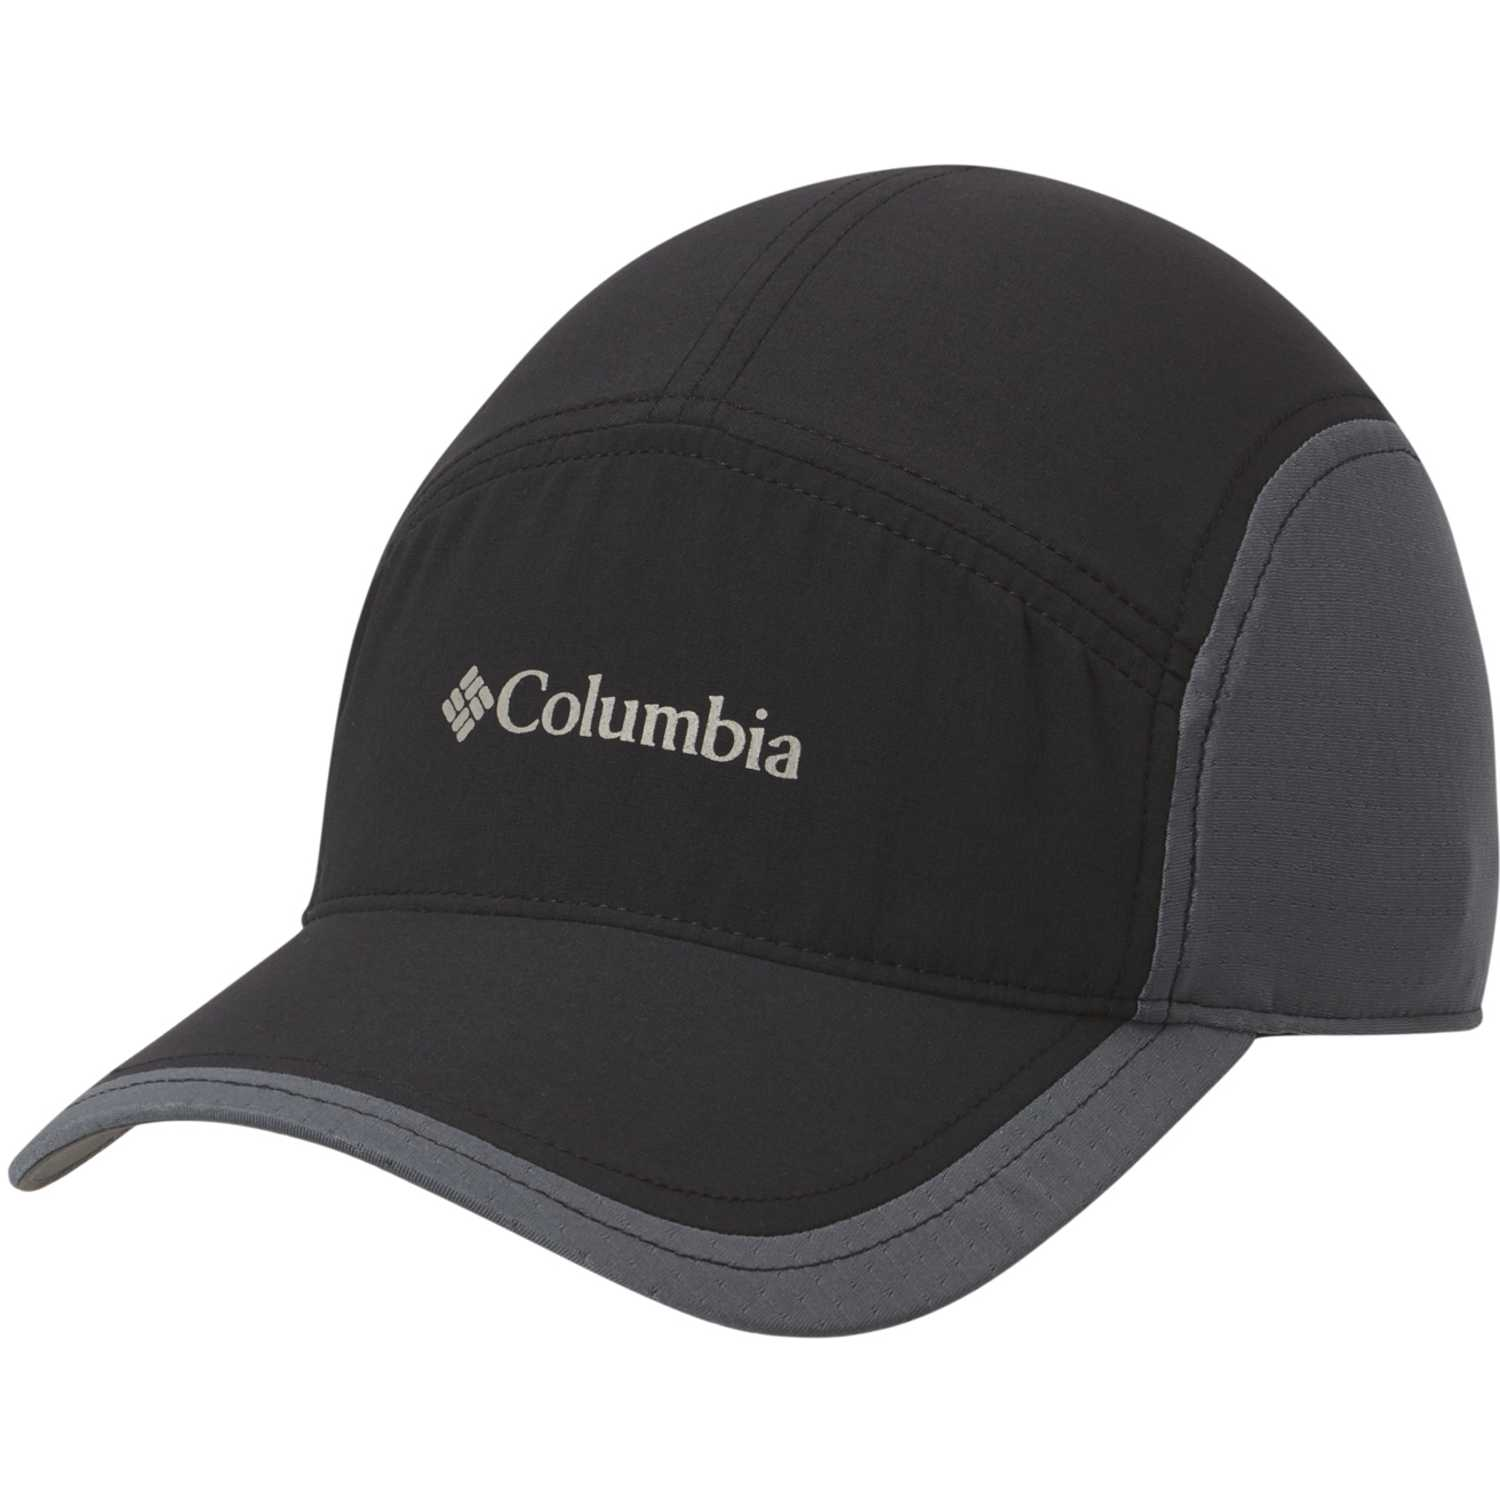 Gorro de Mujer Columbia Negro / plomo freeze degree womens